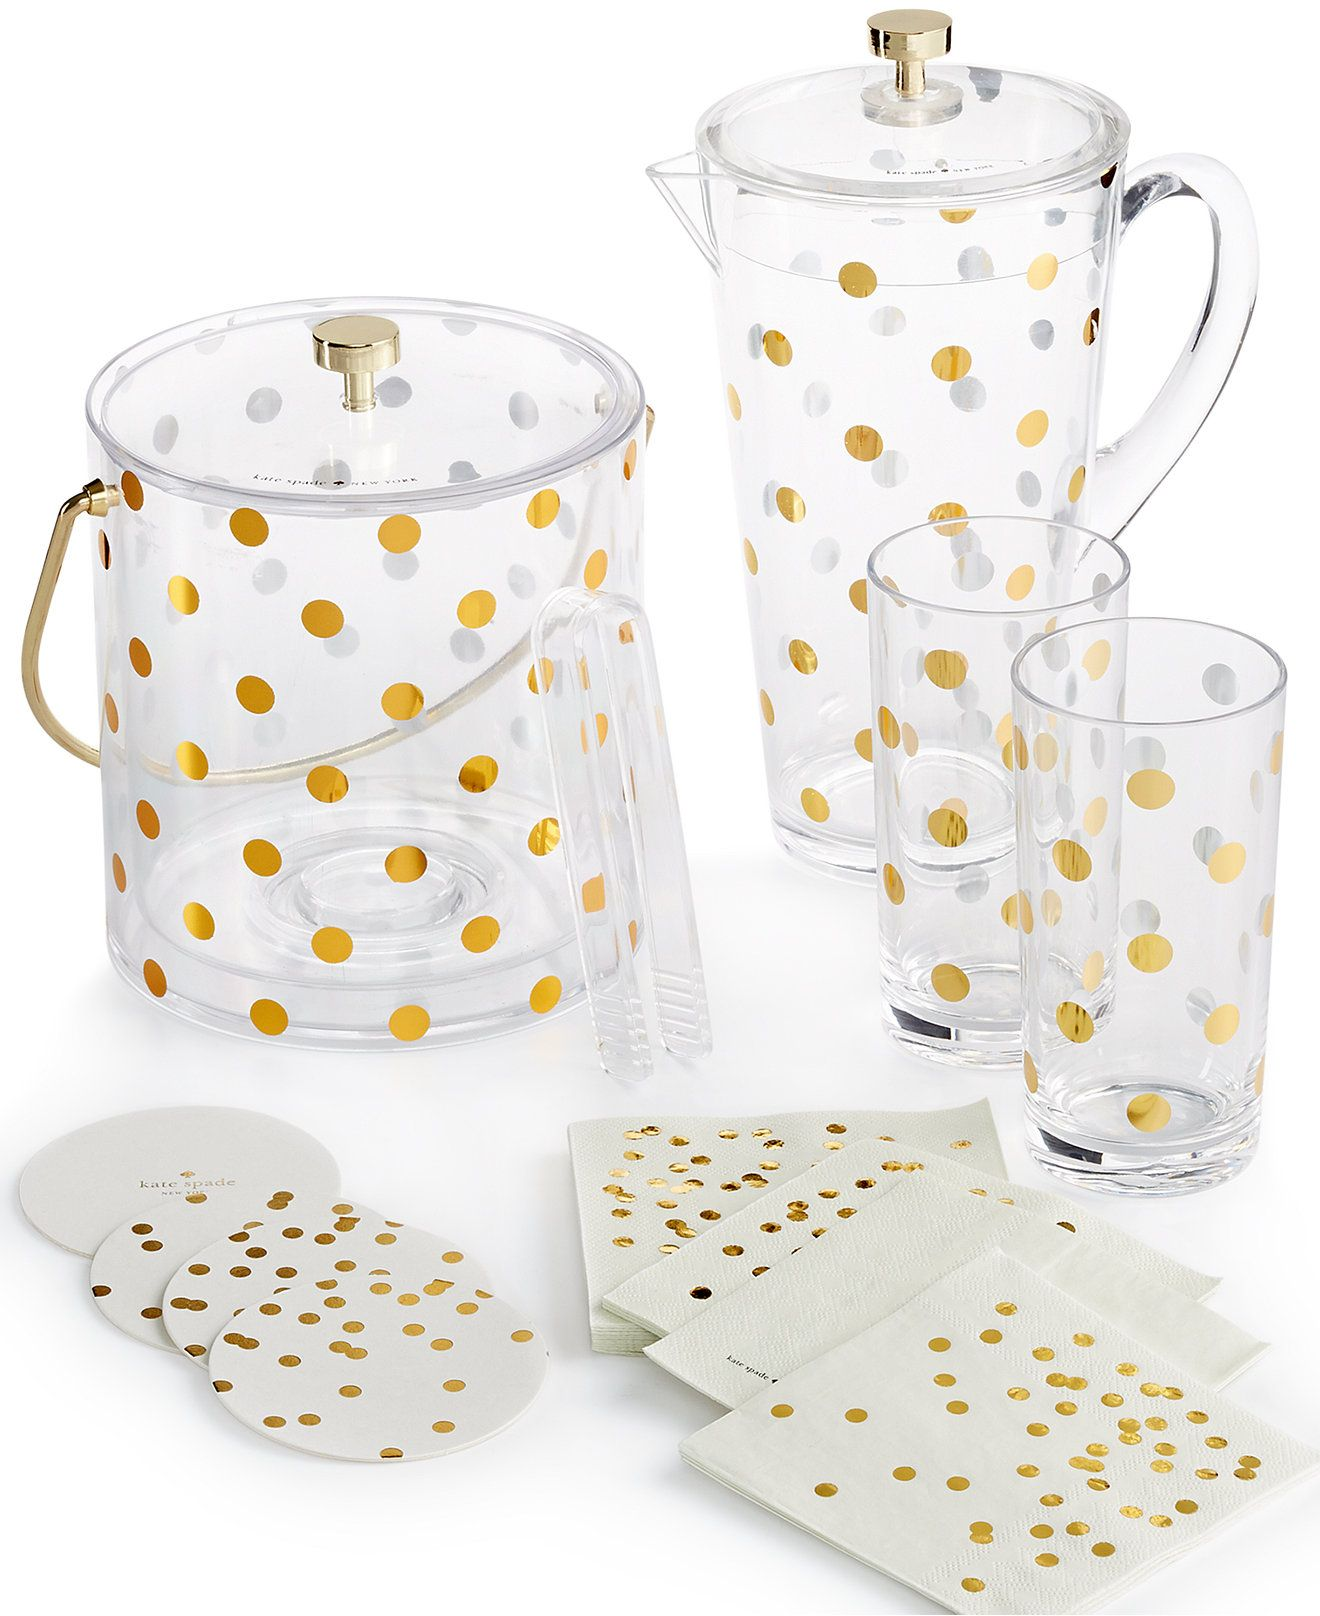 Diy Wine Glasses Gold Dot Kate Spade Knock Off Cricut